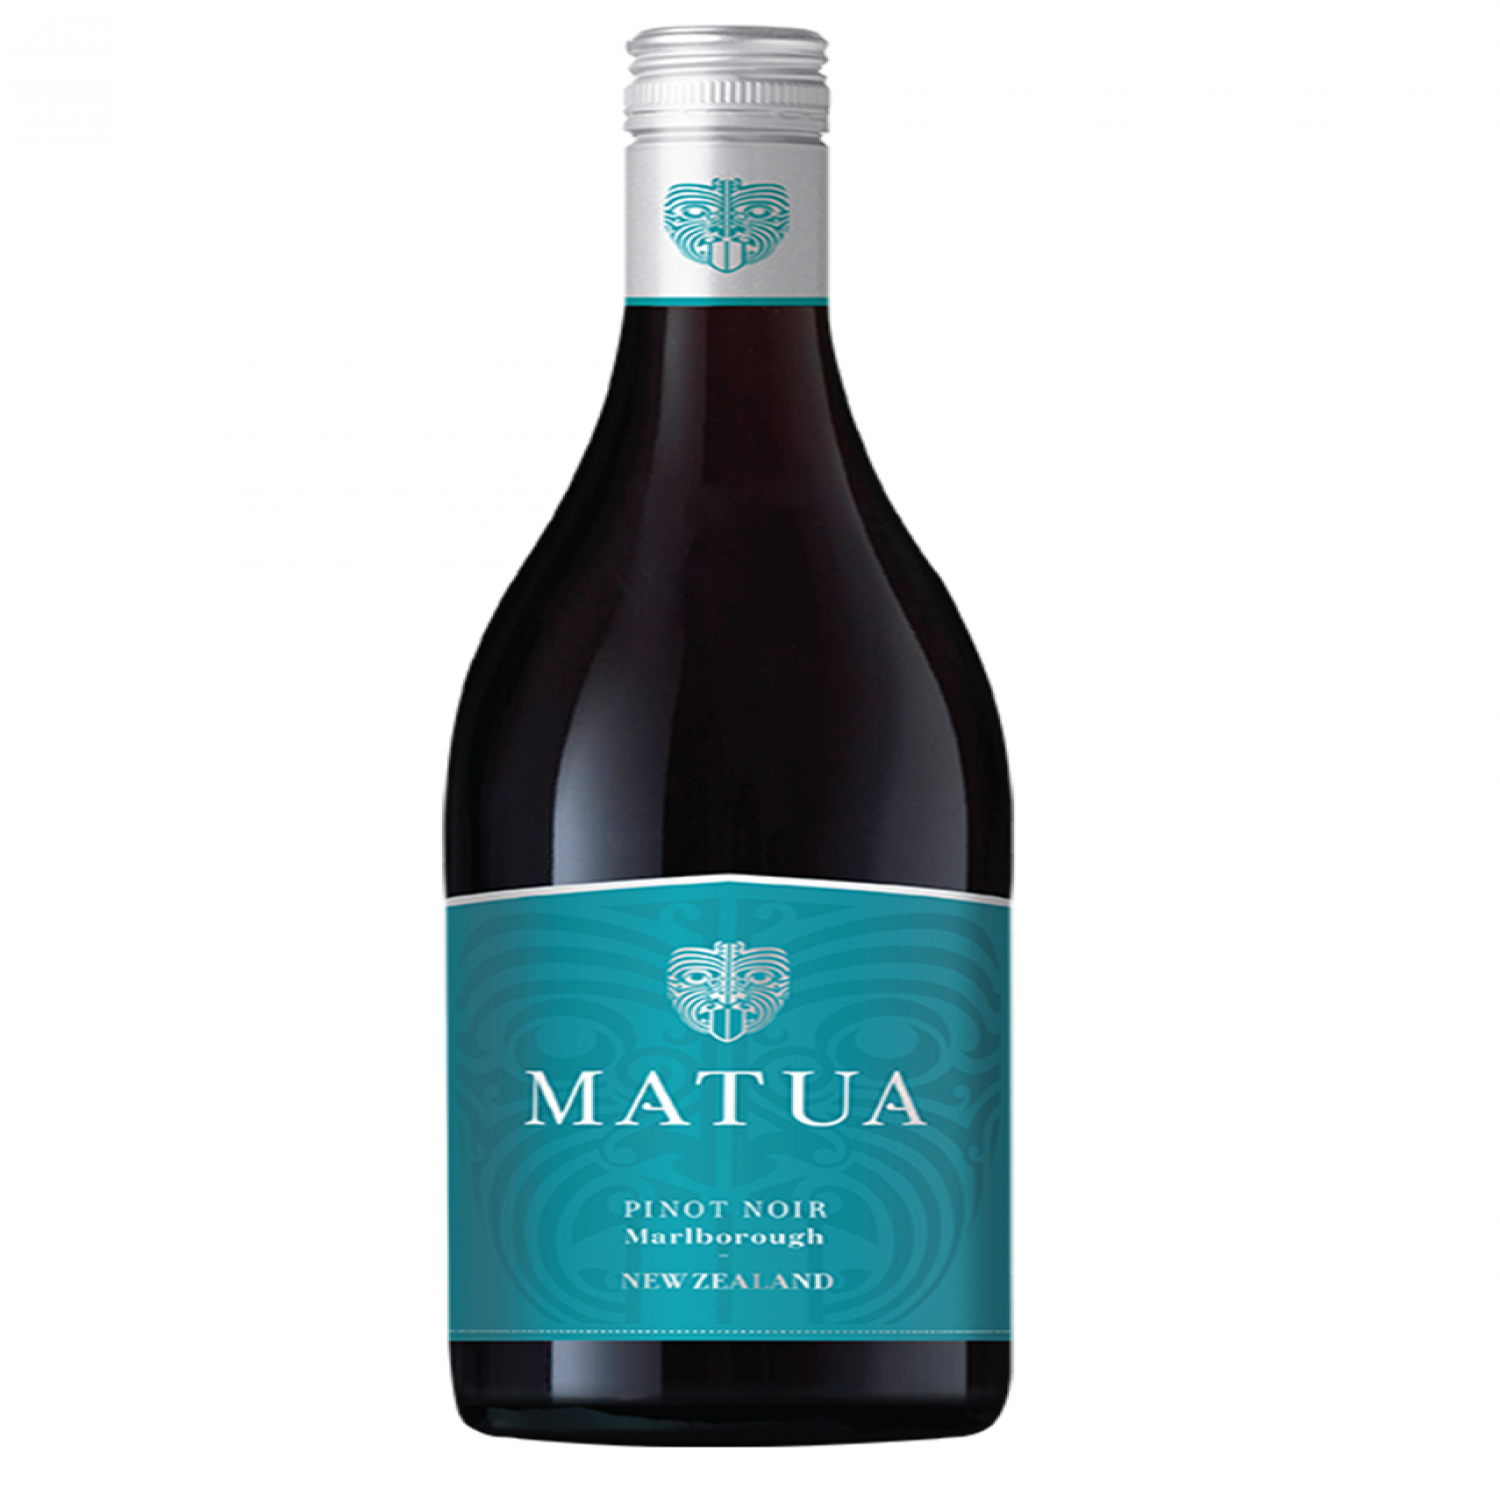 Rượu vang đỏ New Zealand - Matua Pinot Noir Marlborough